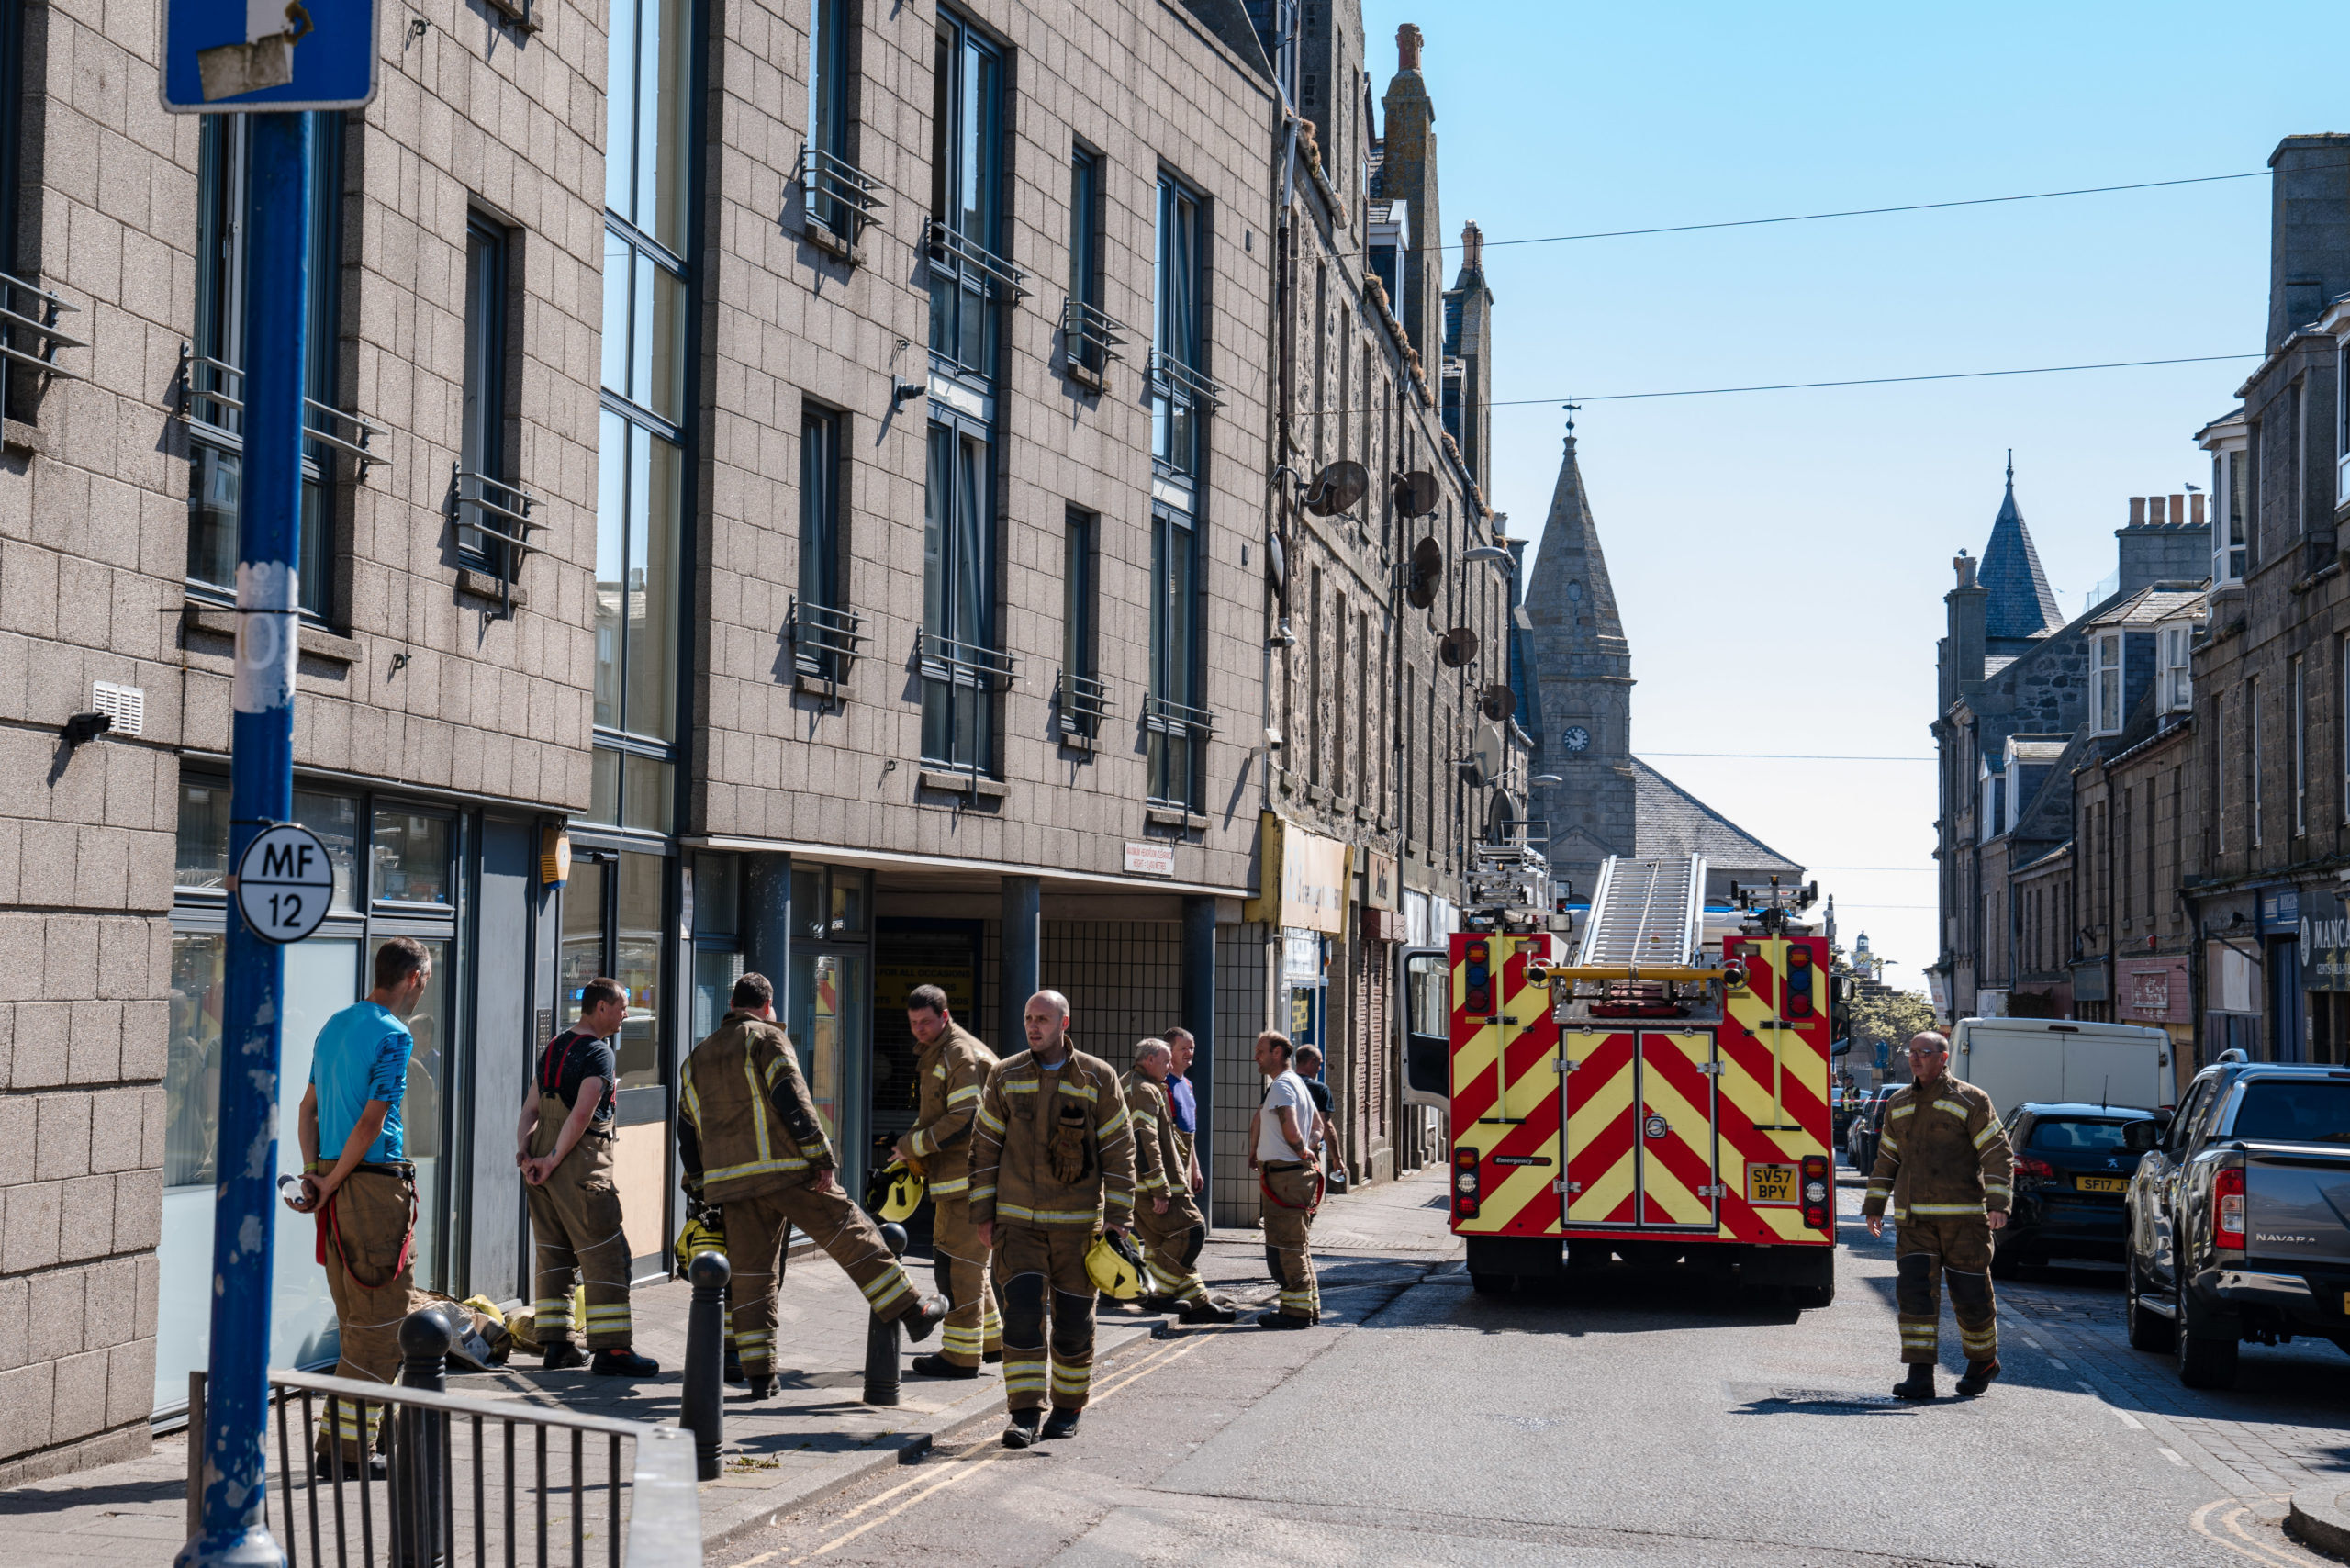 Fire crews were called to the scene shortly before 9am